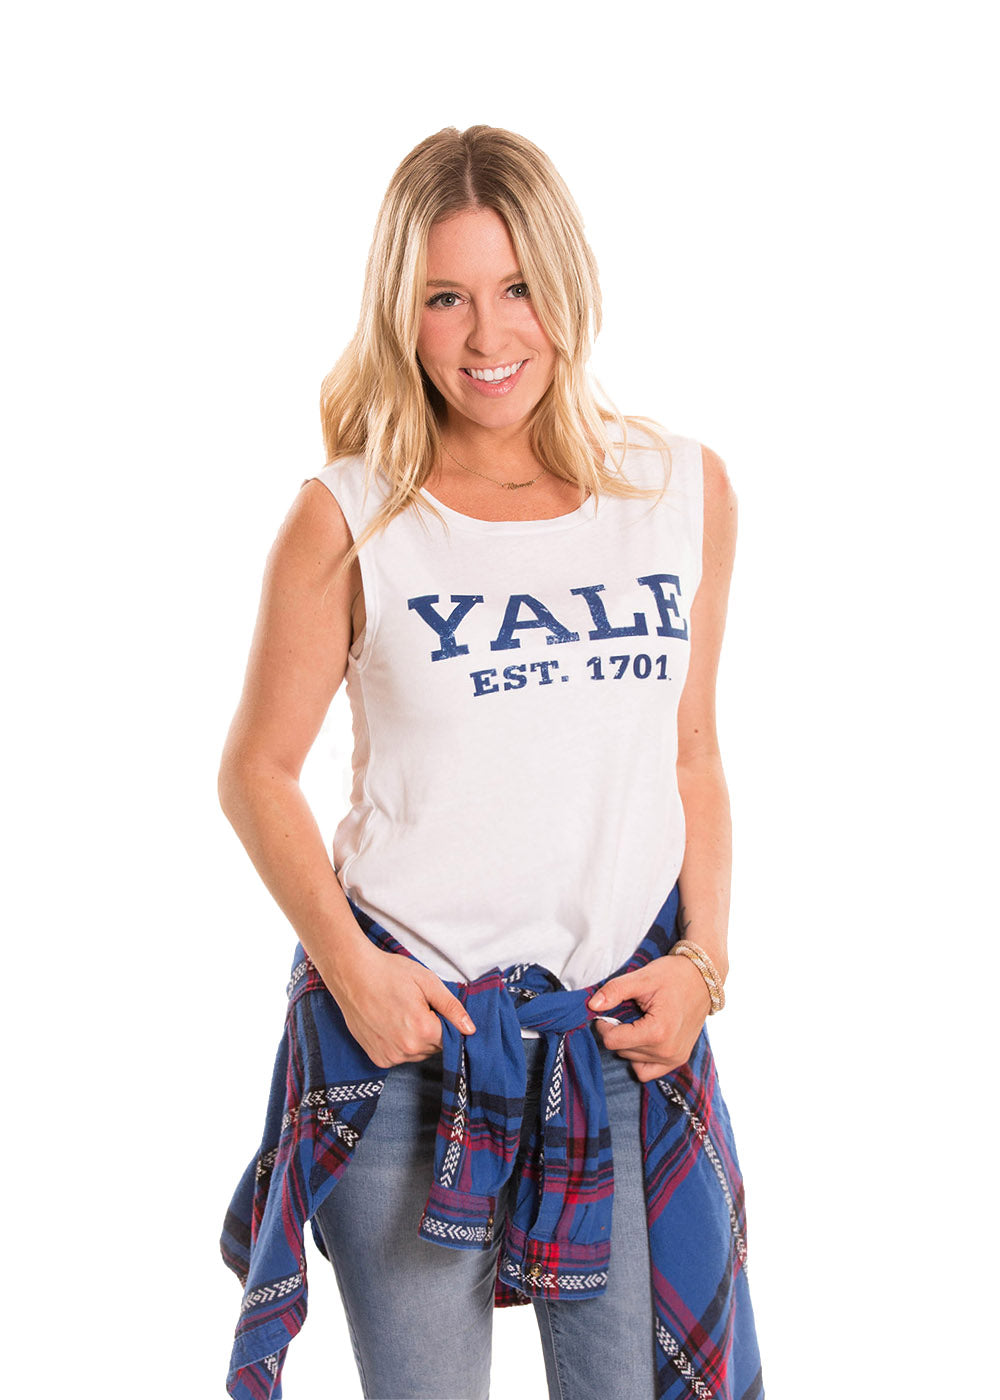 YALE UNIVERSITY Bulldogs Women's Muscle Tank